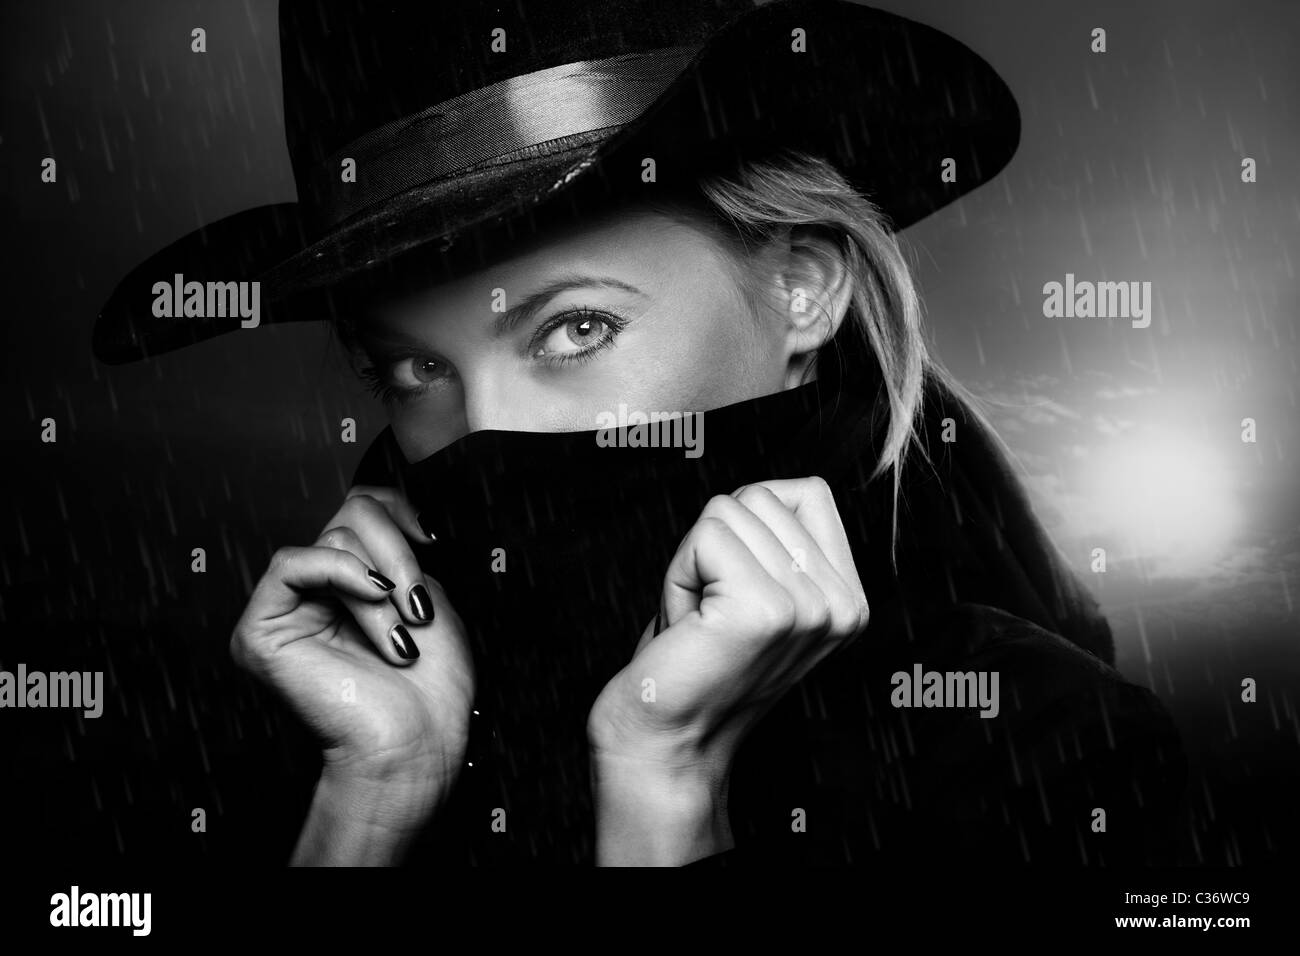 Criminal woman with cowboy hat at twilight under the rain. Natural light and shadows - Stock Image